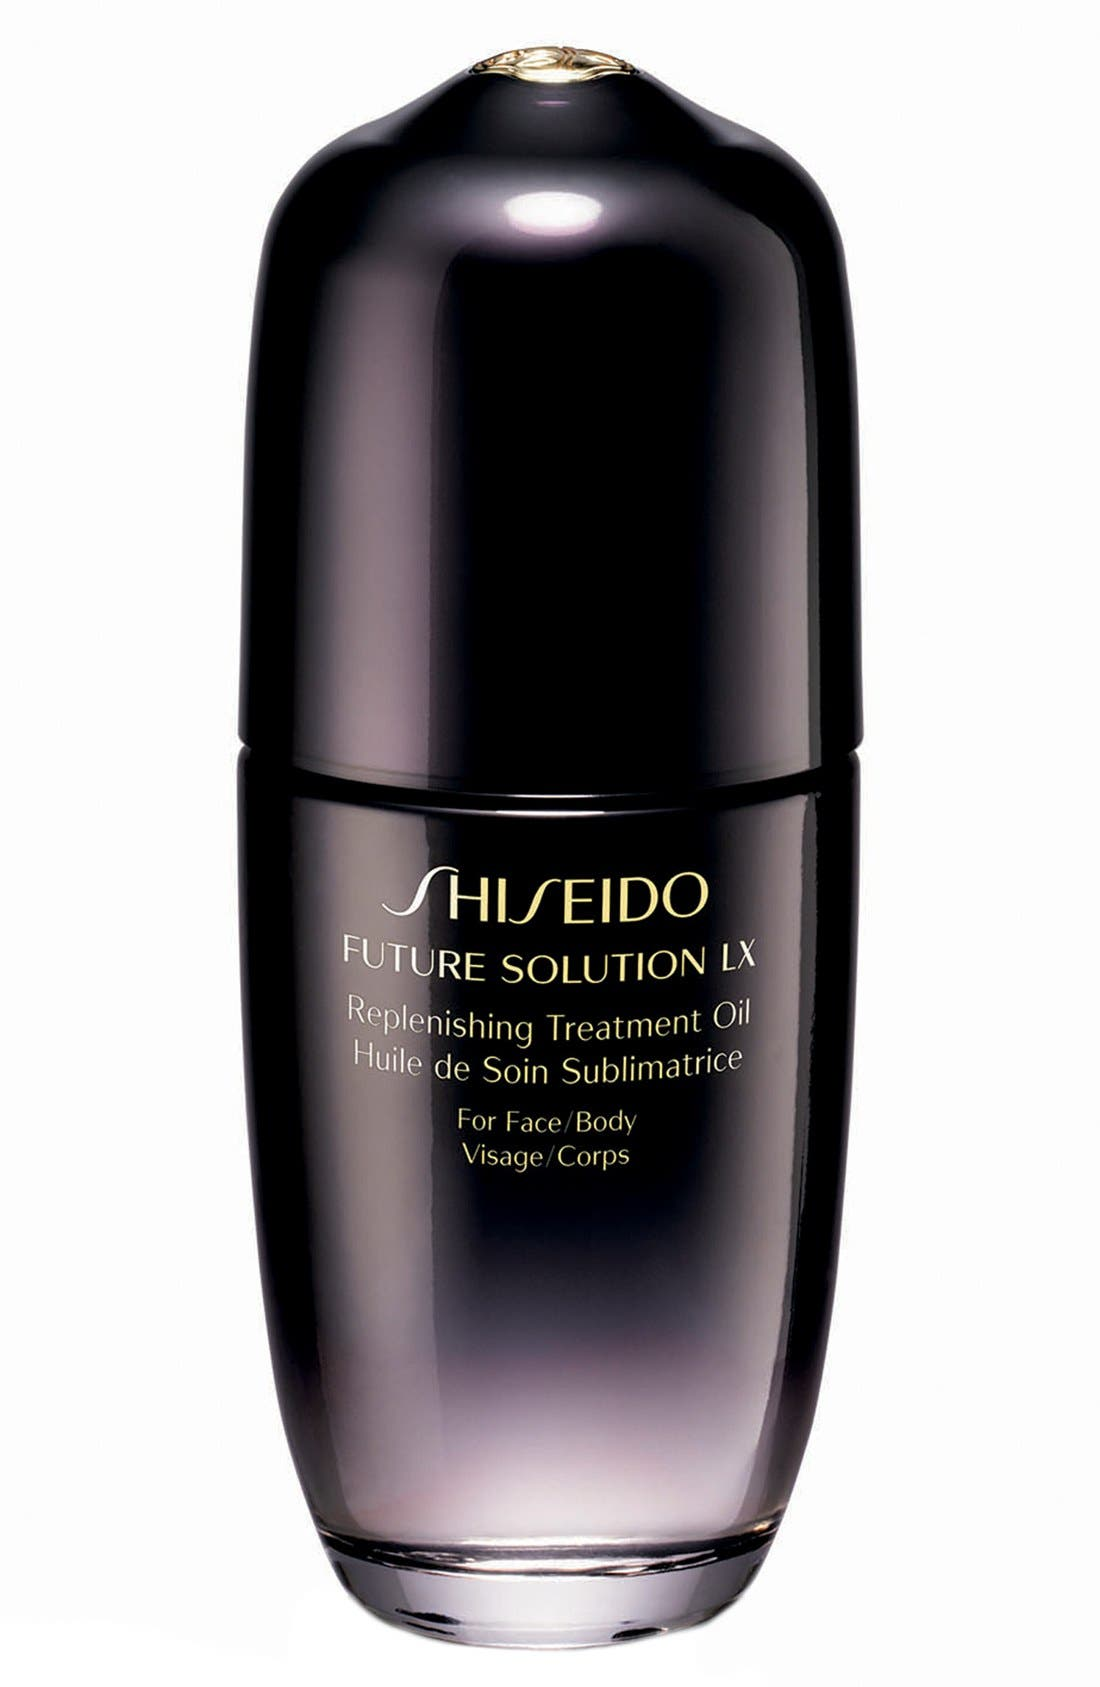 Shiseido 'Future Solution LX' Replenishing Treatment Oil